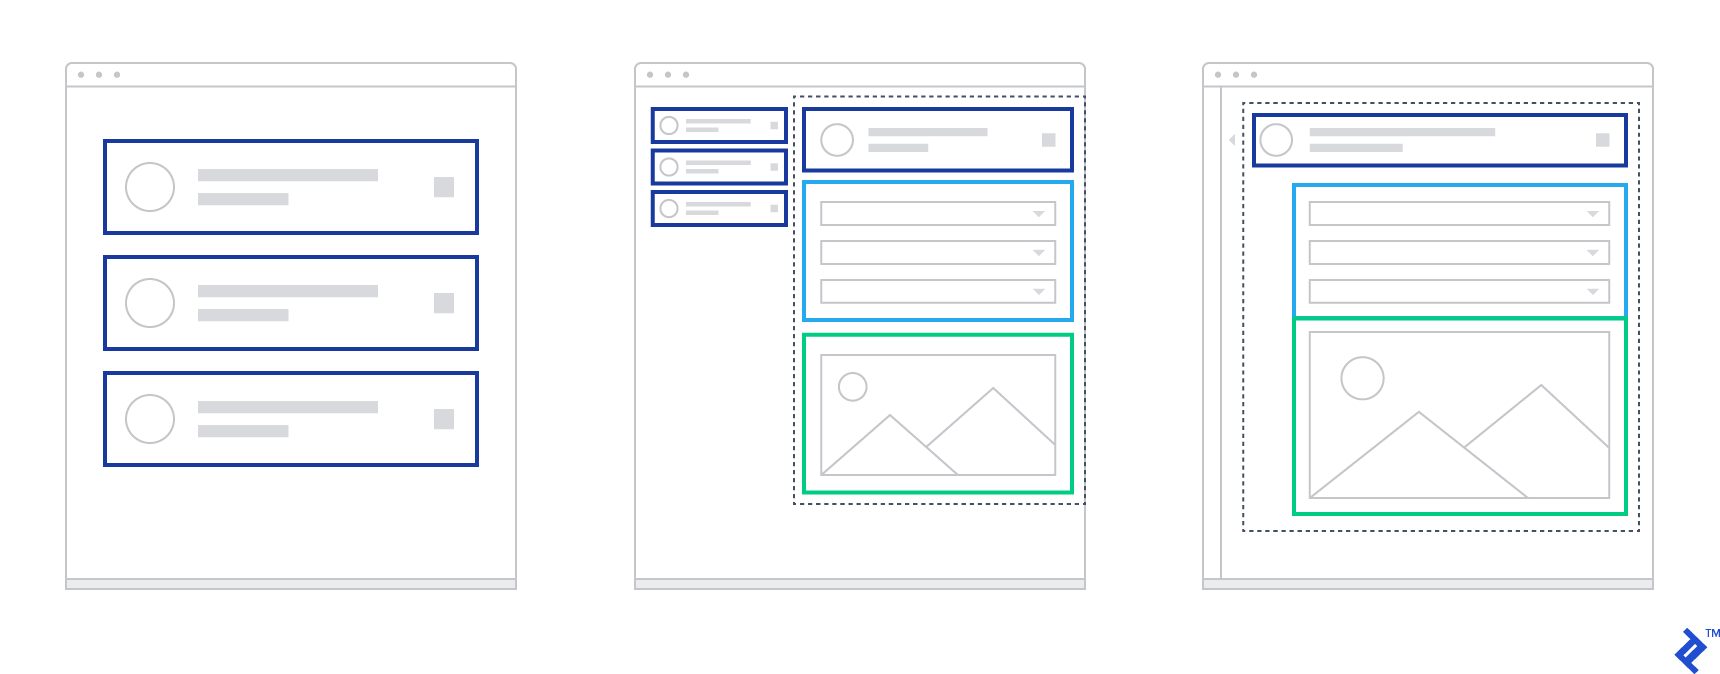 Functional components grouping display components for UX A/B testing